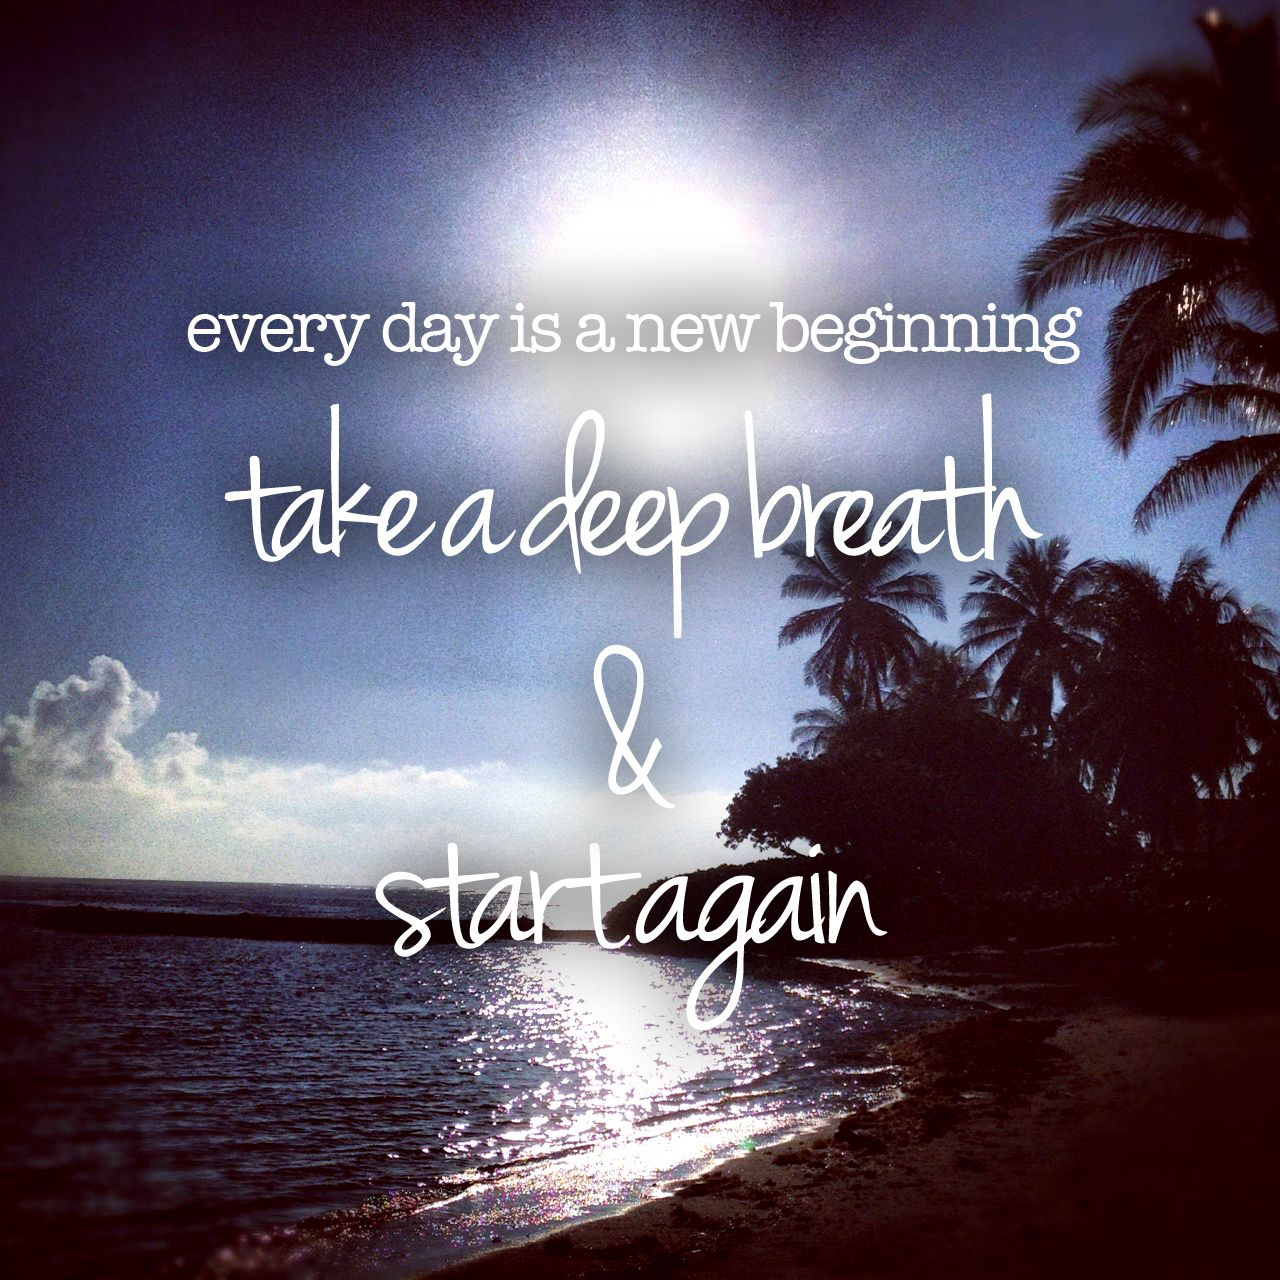 New Start Quotes: Every Day Is A New Beginning. Take A Deep Breath & Start